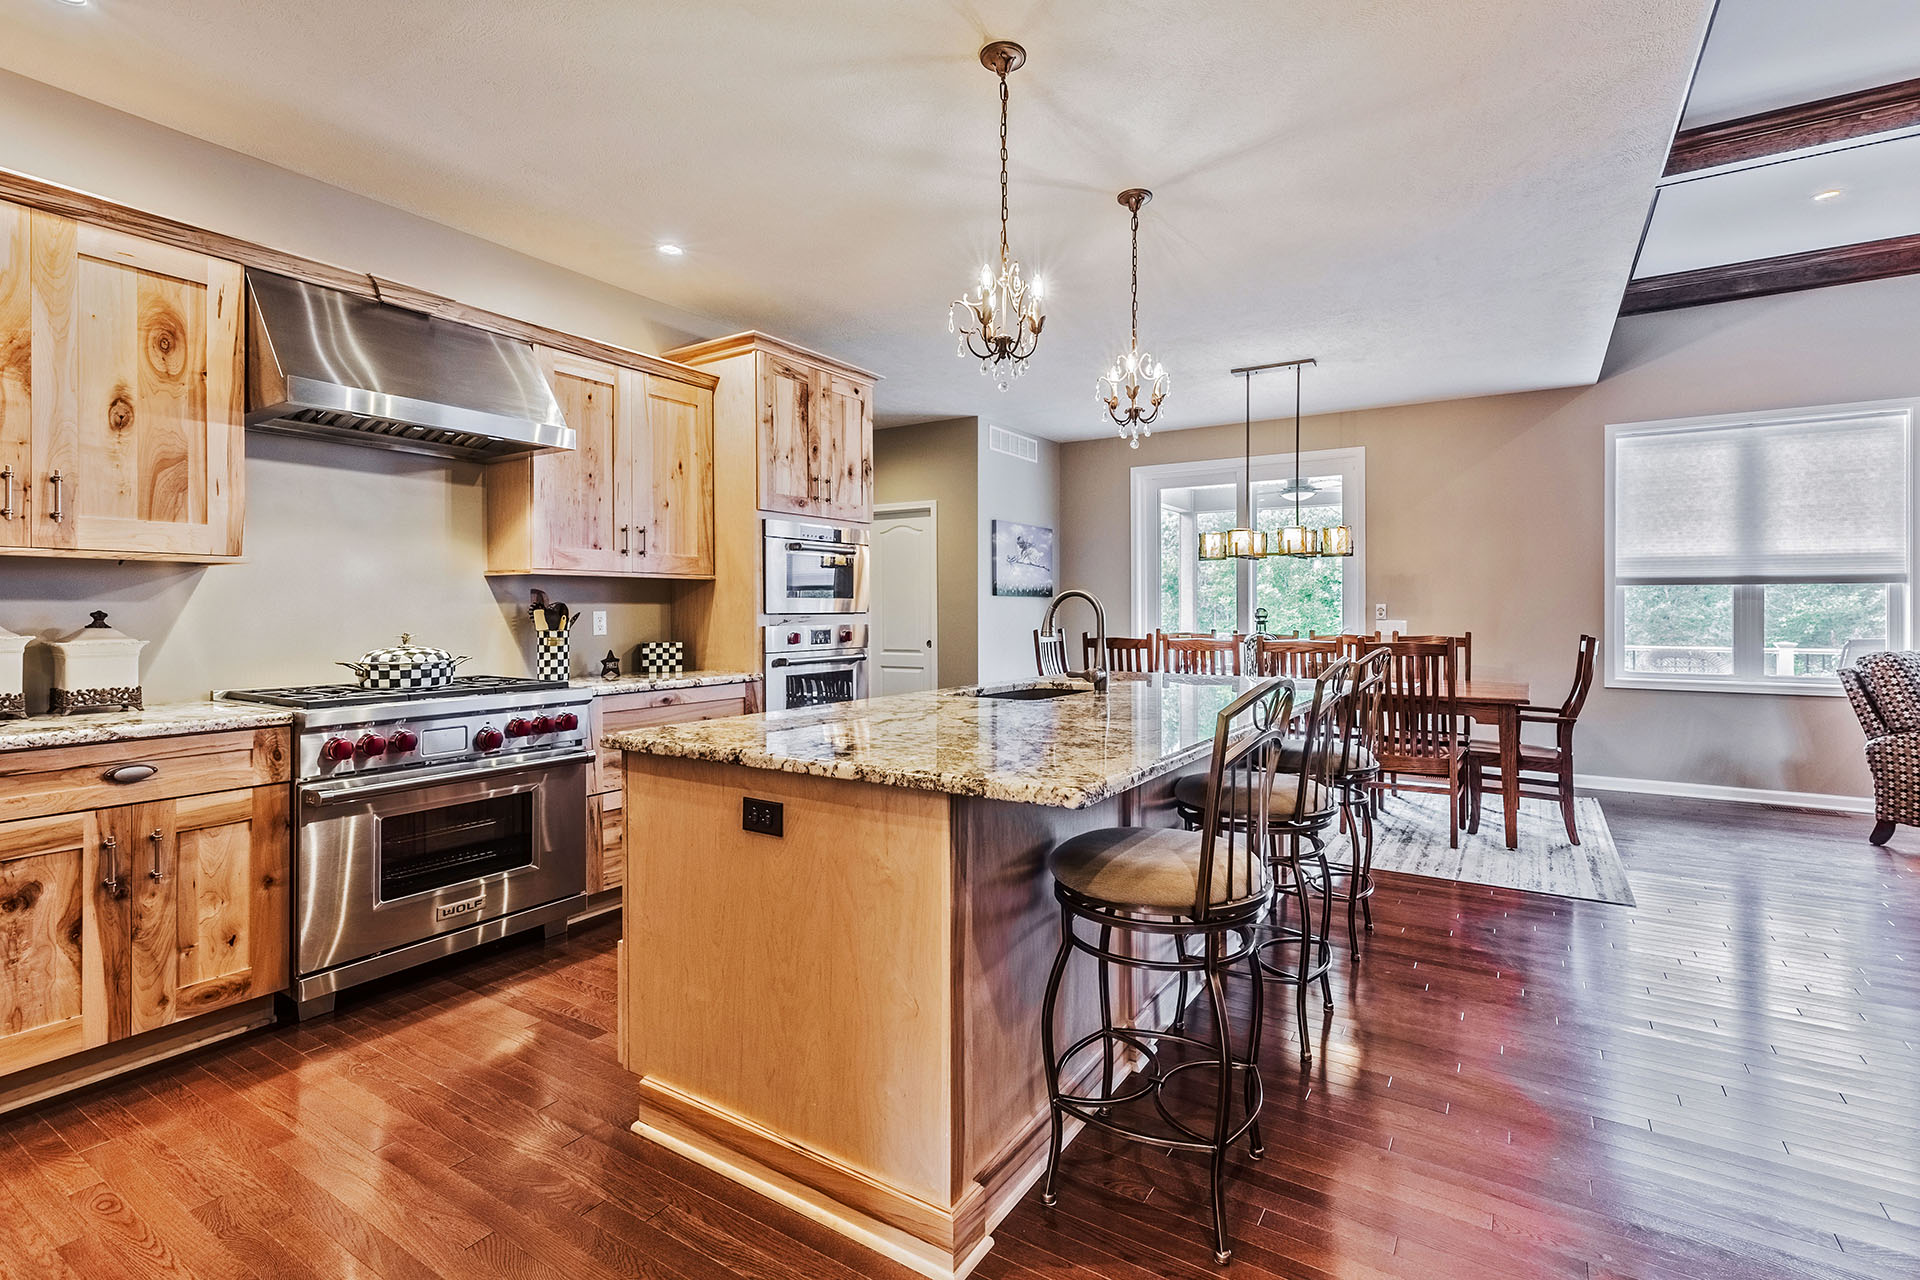 Kitchen Remodeling: What Would Go Into Your Dream Kitchen?